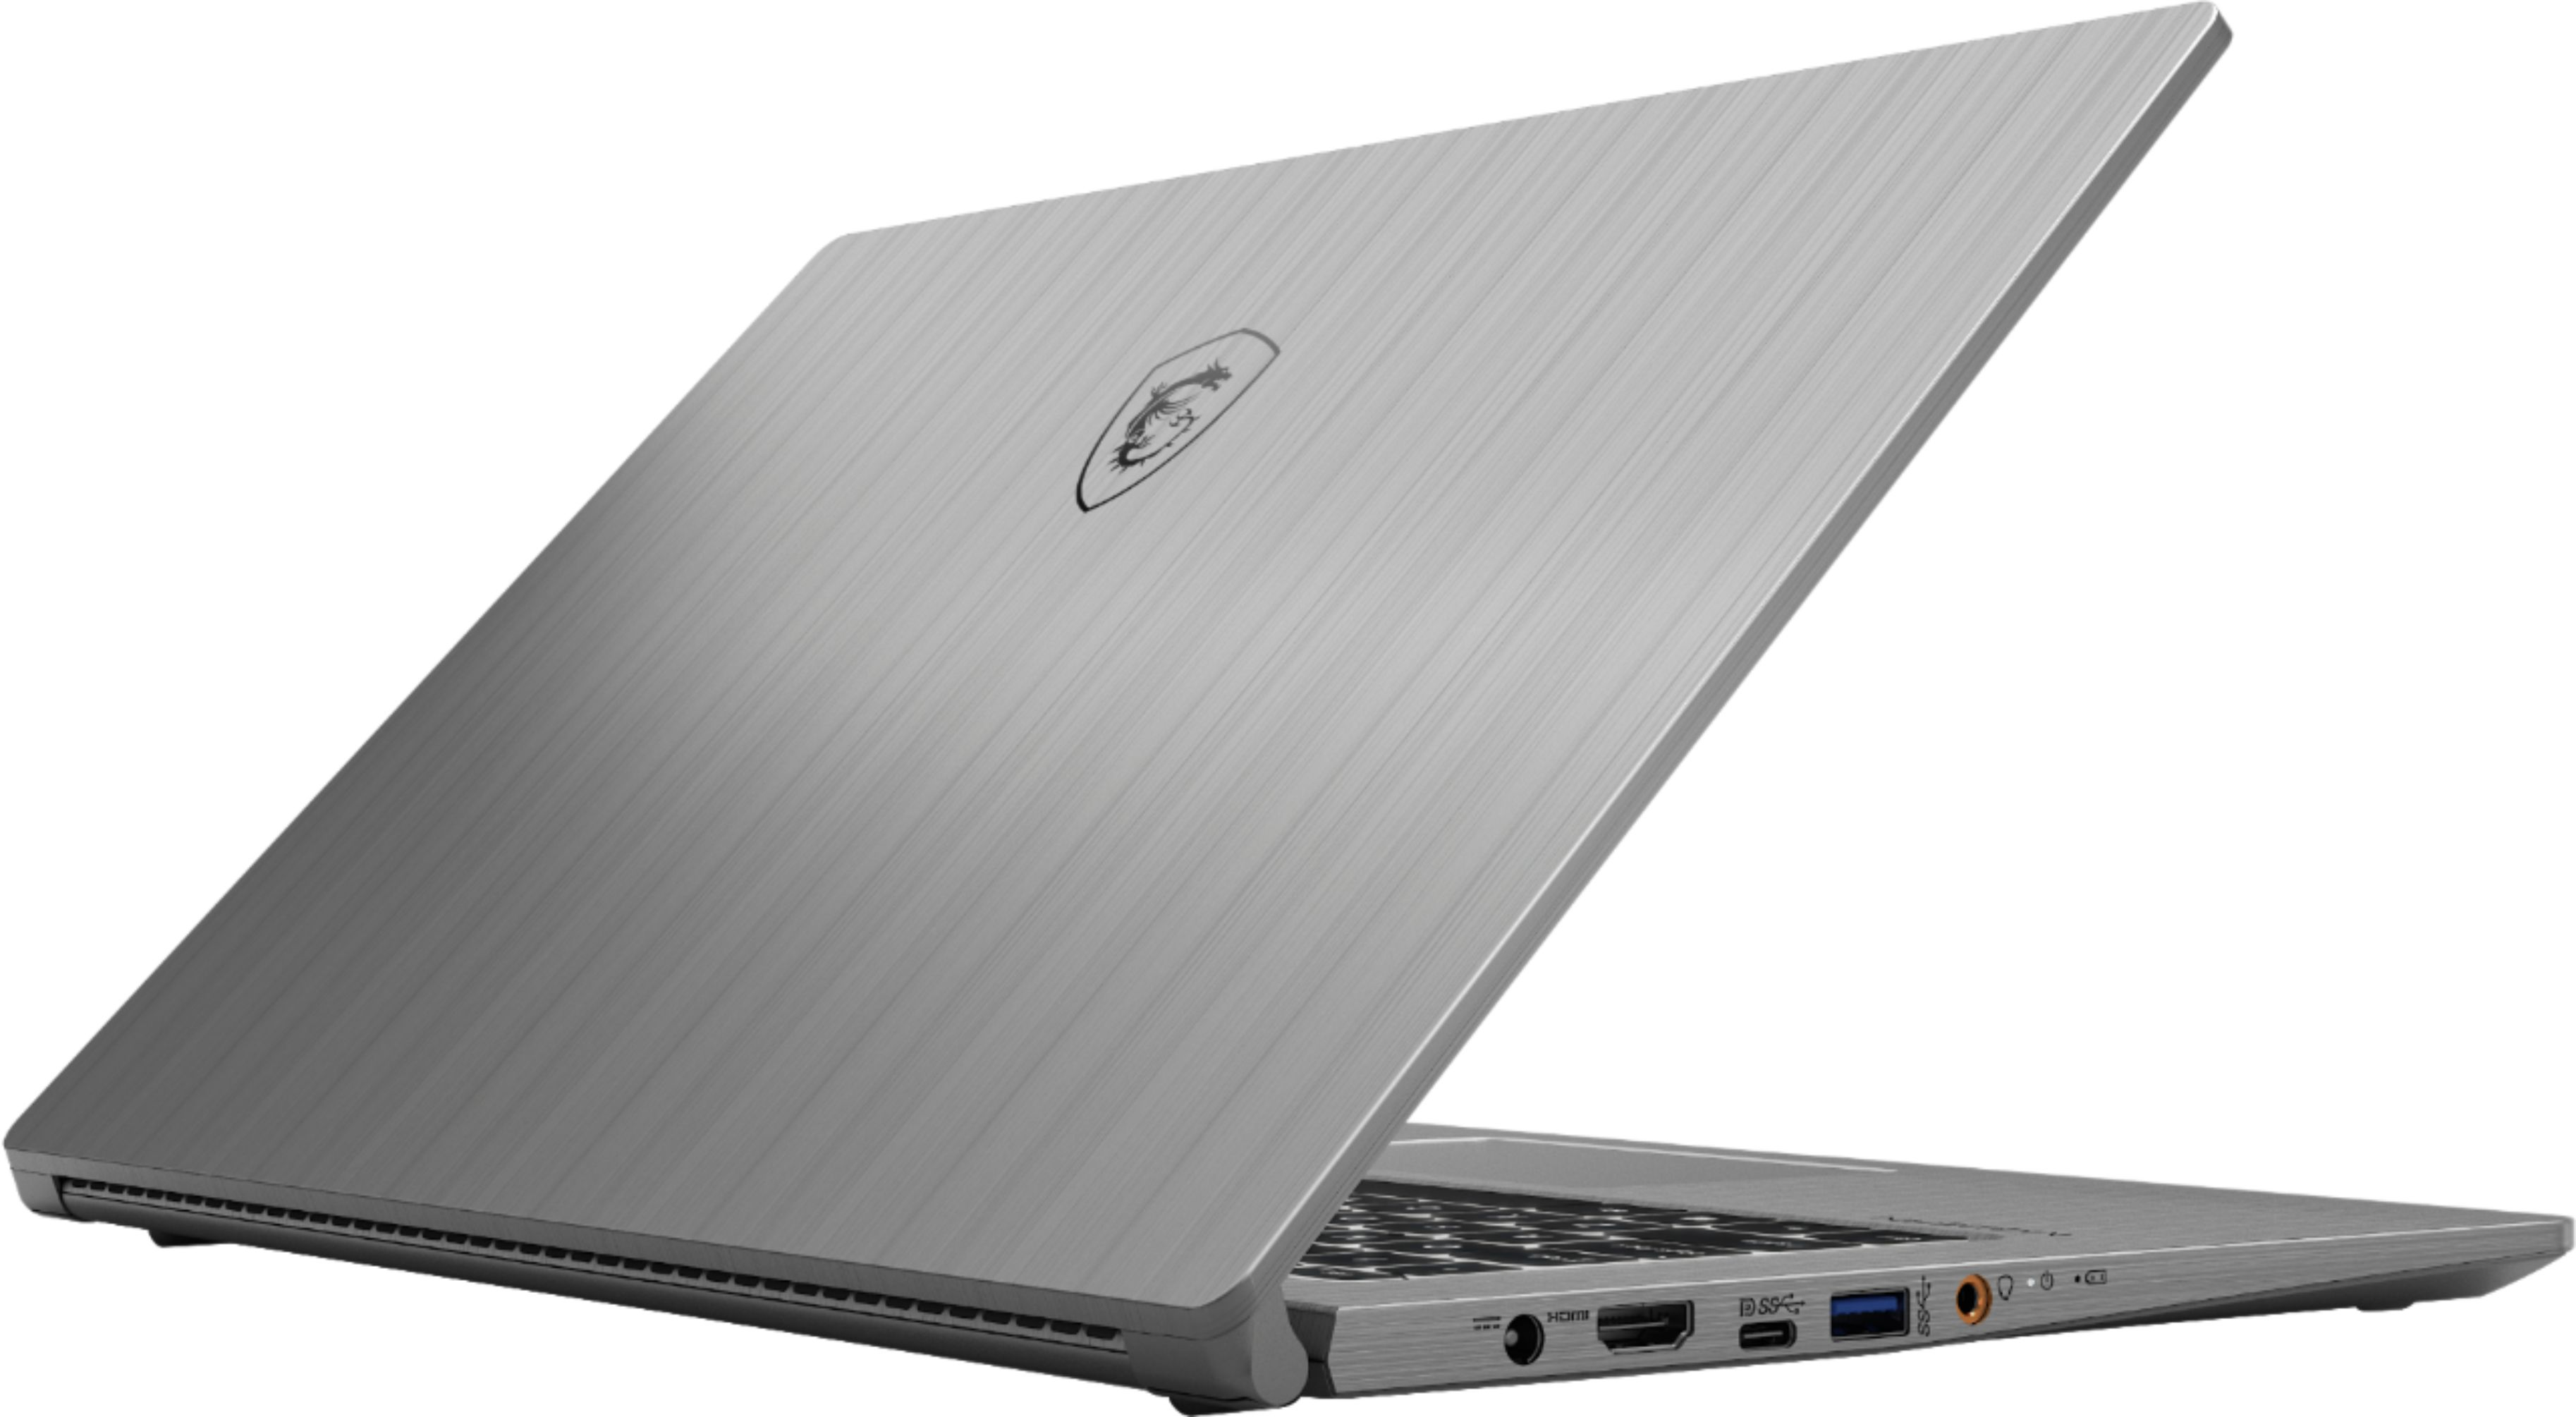 Alt View Zoom 1. MSI - Modern 15 A10M-450 - Intel I7 - 16GB Memory - 512GB SSD - Space Gray.